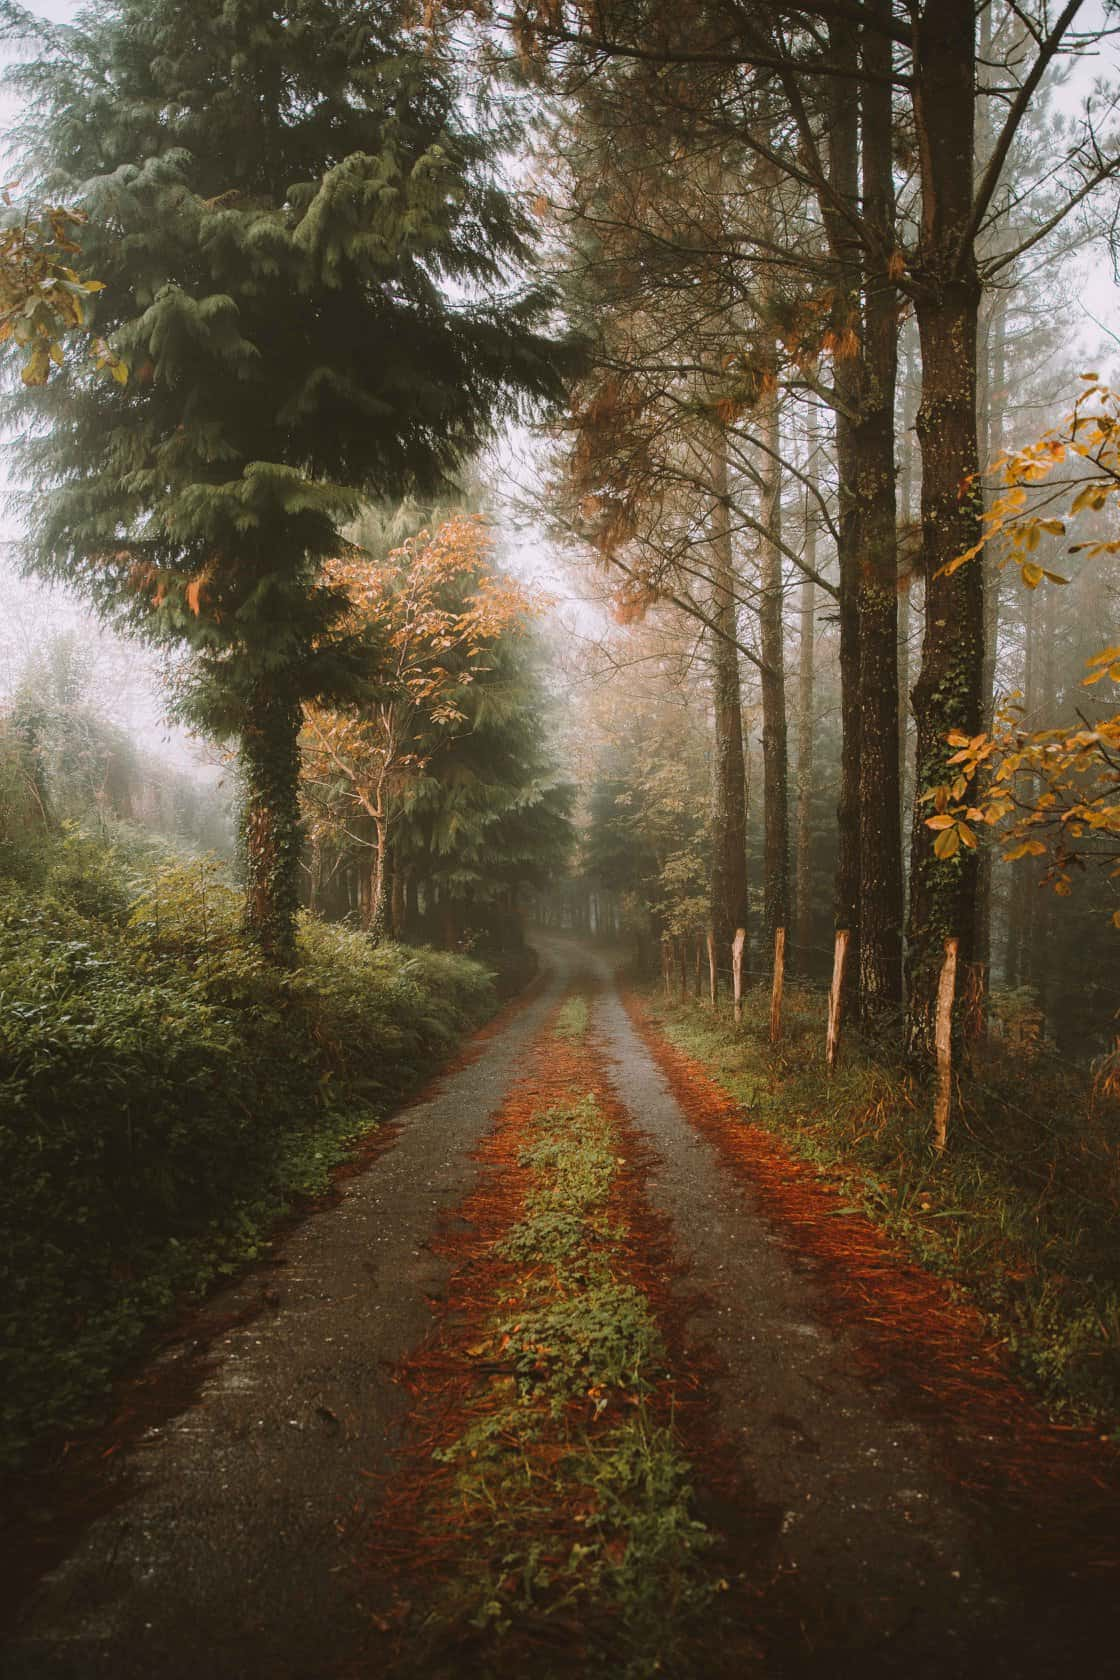 a beautiful image of a street in a forest